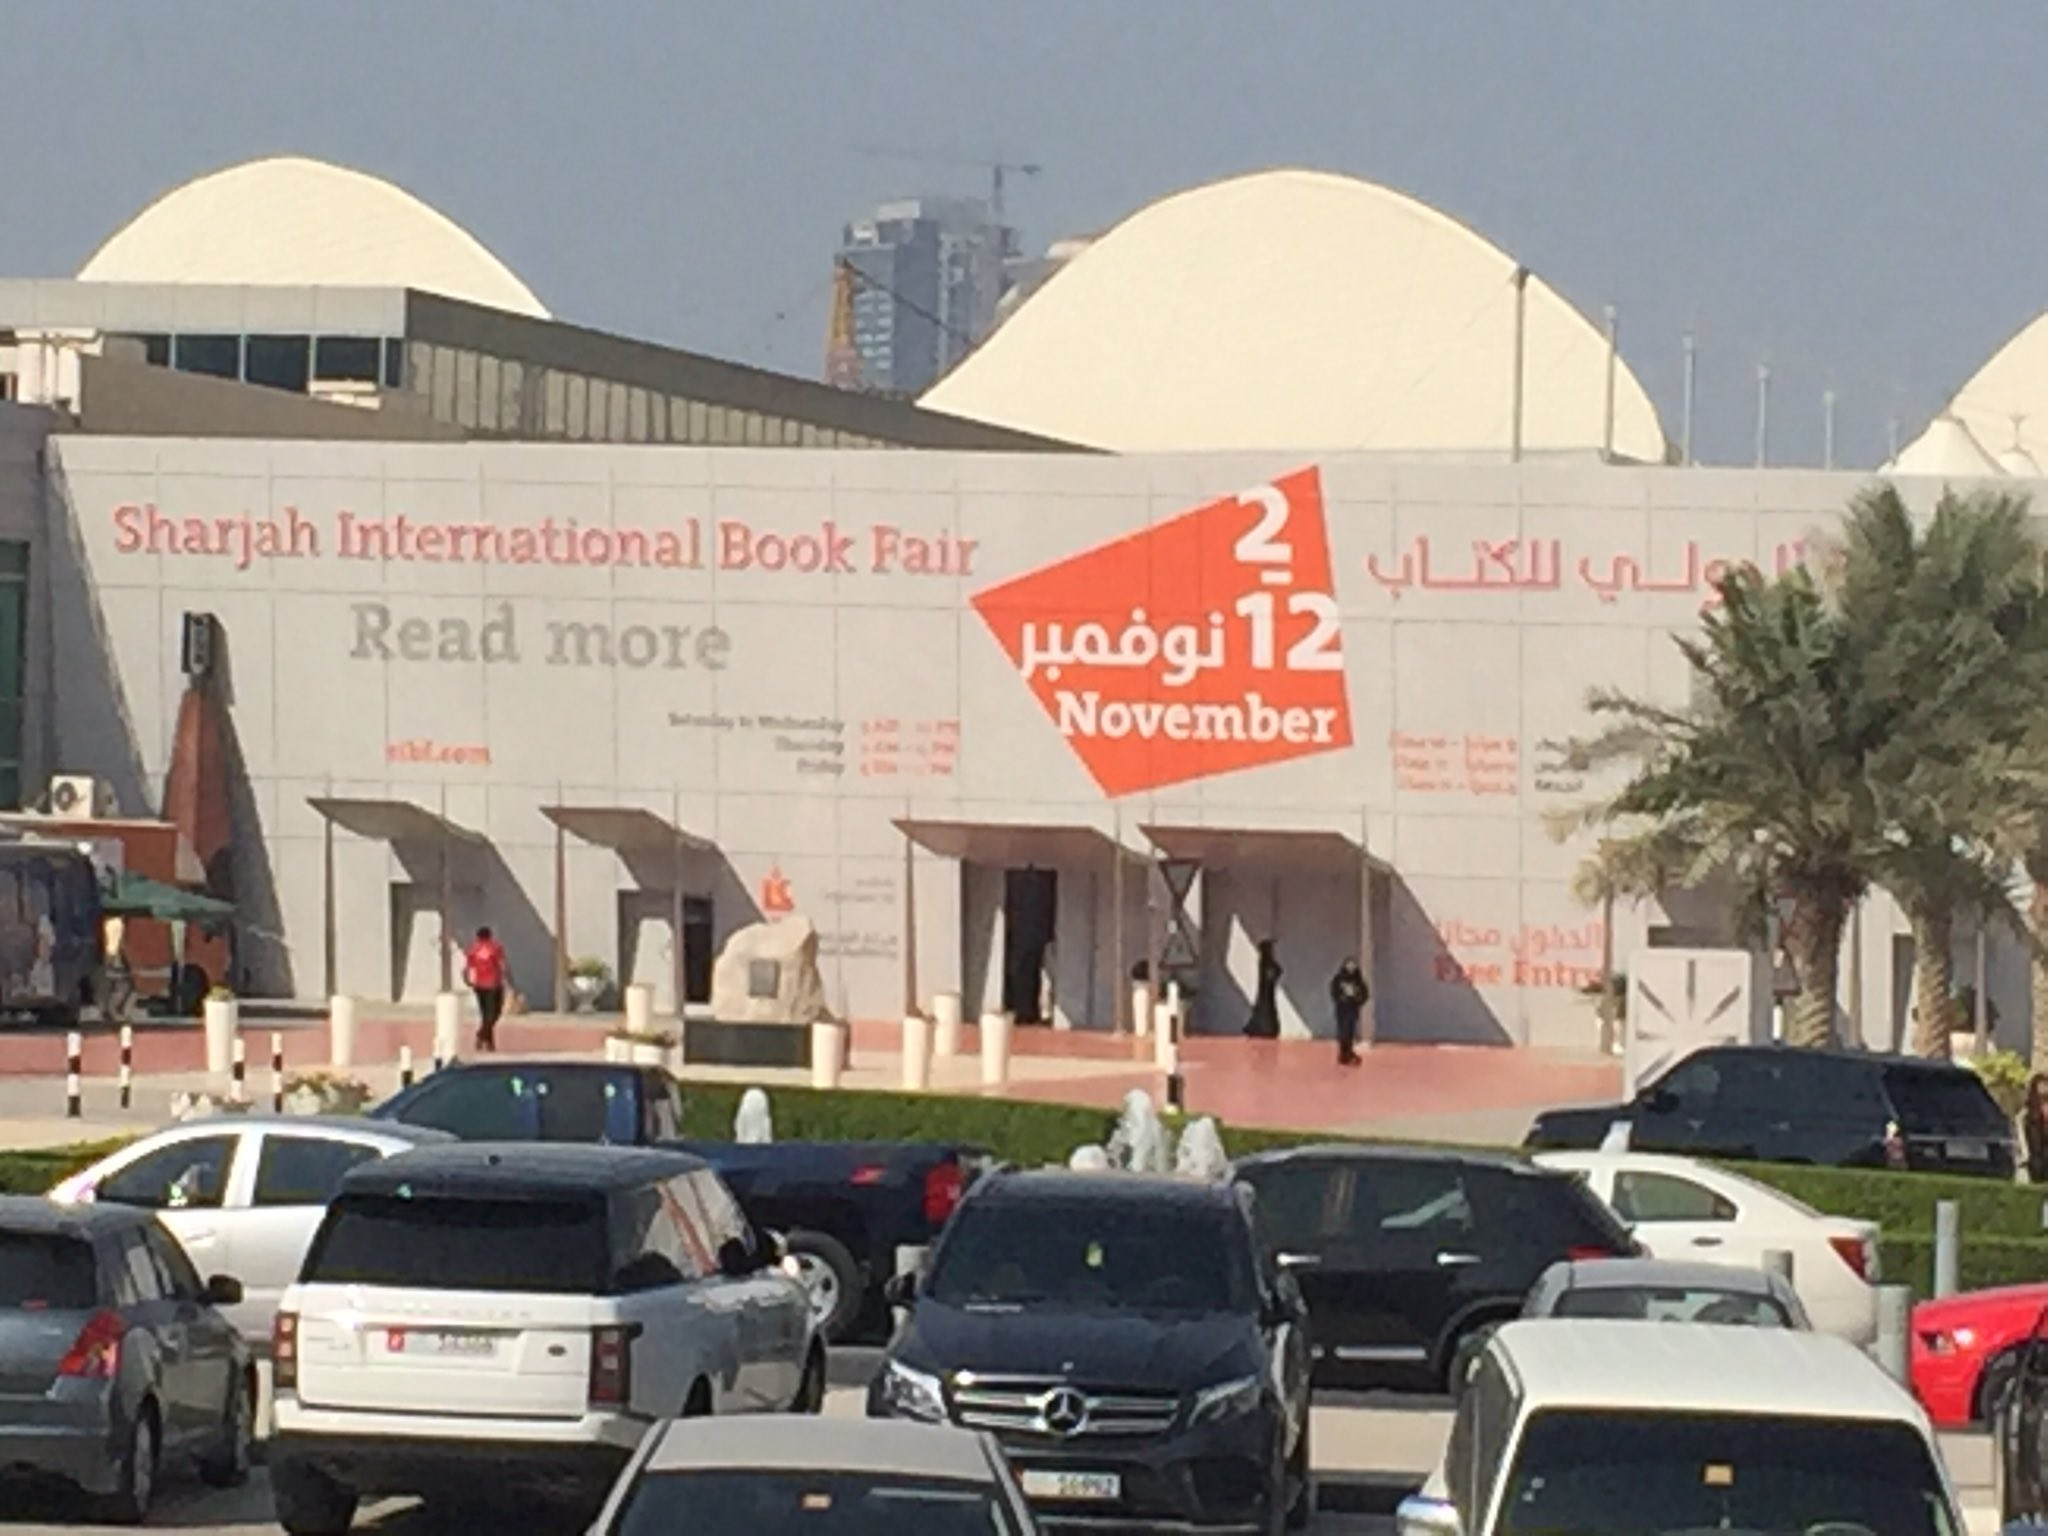 "Love the theme of this year's Sharjah Book Fest ""Read More"" #SIBFALA16 #ASKinUAE https://t.co/yroHMOtgOK"